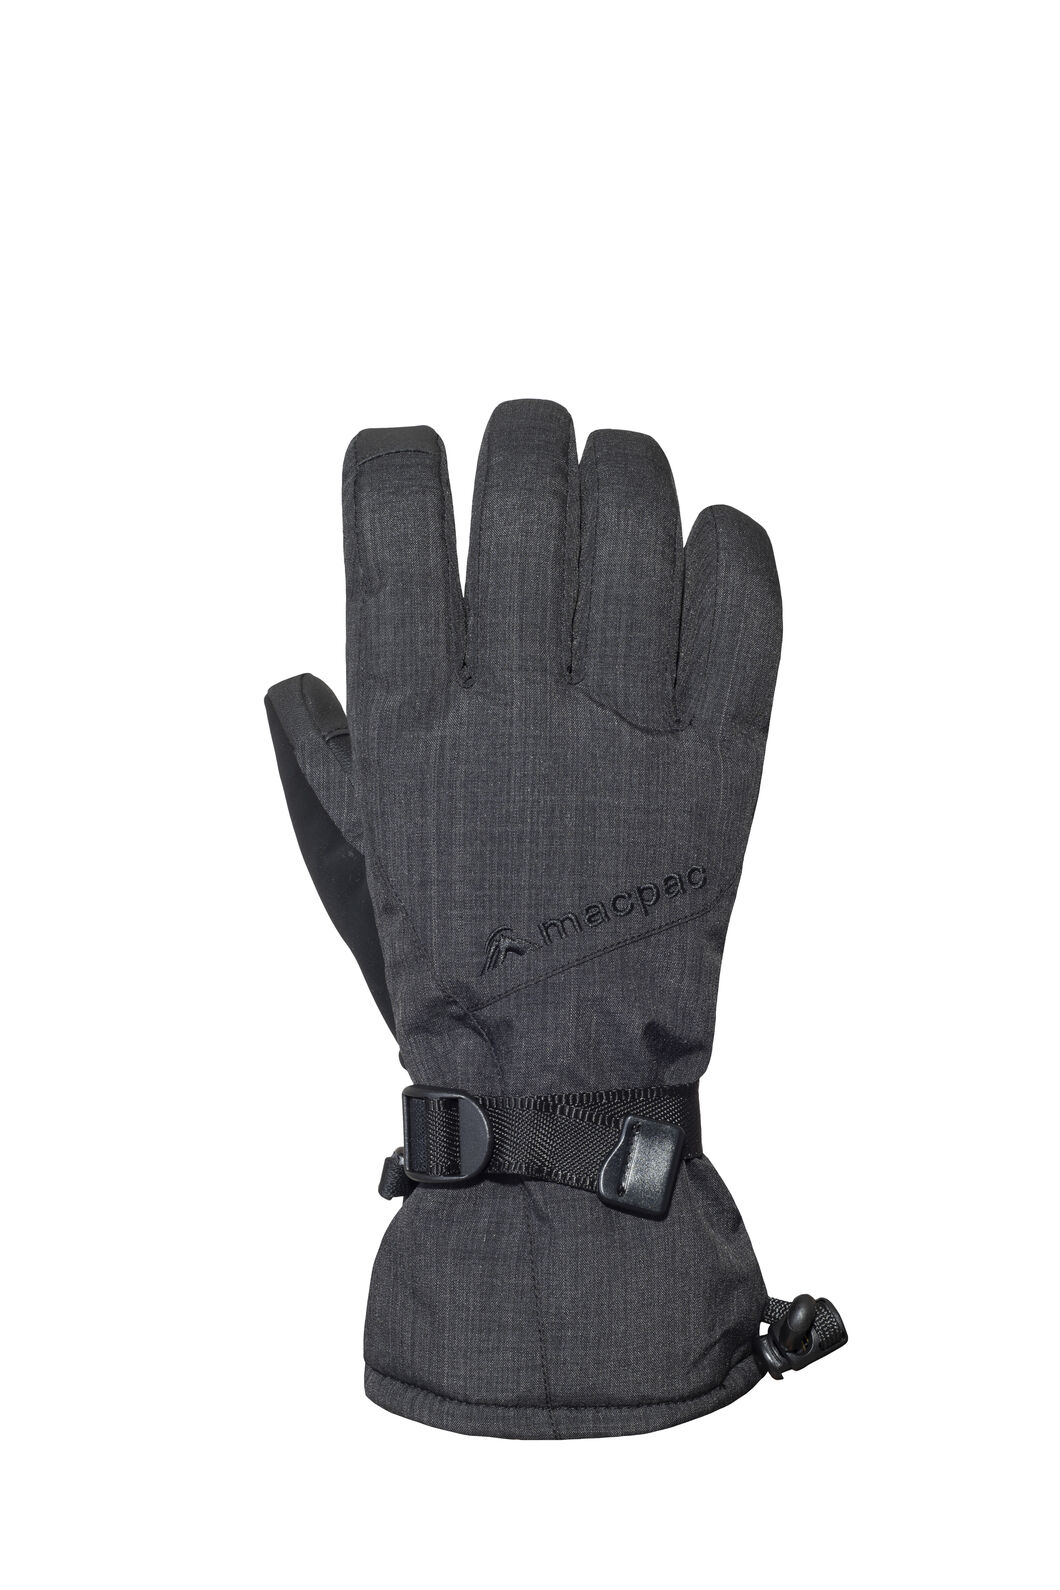 Macpac Carve Gloves, Black, hi-res